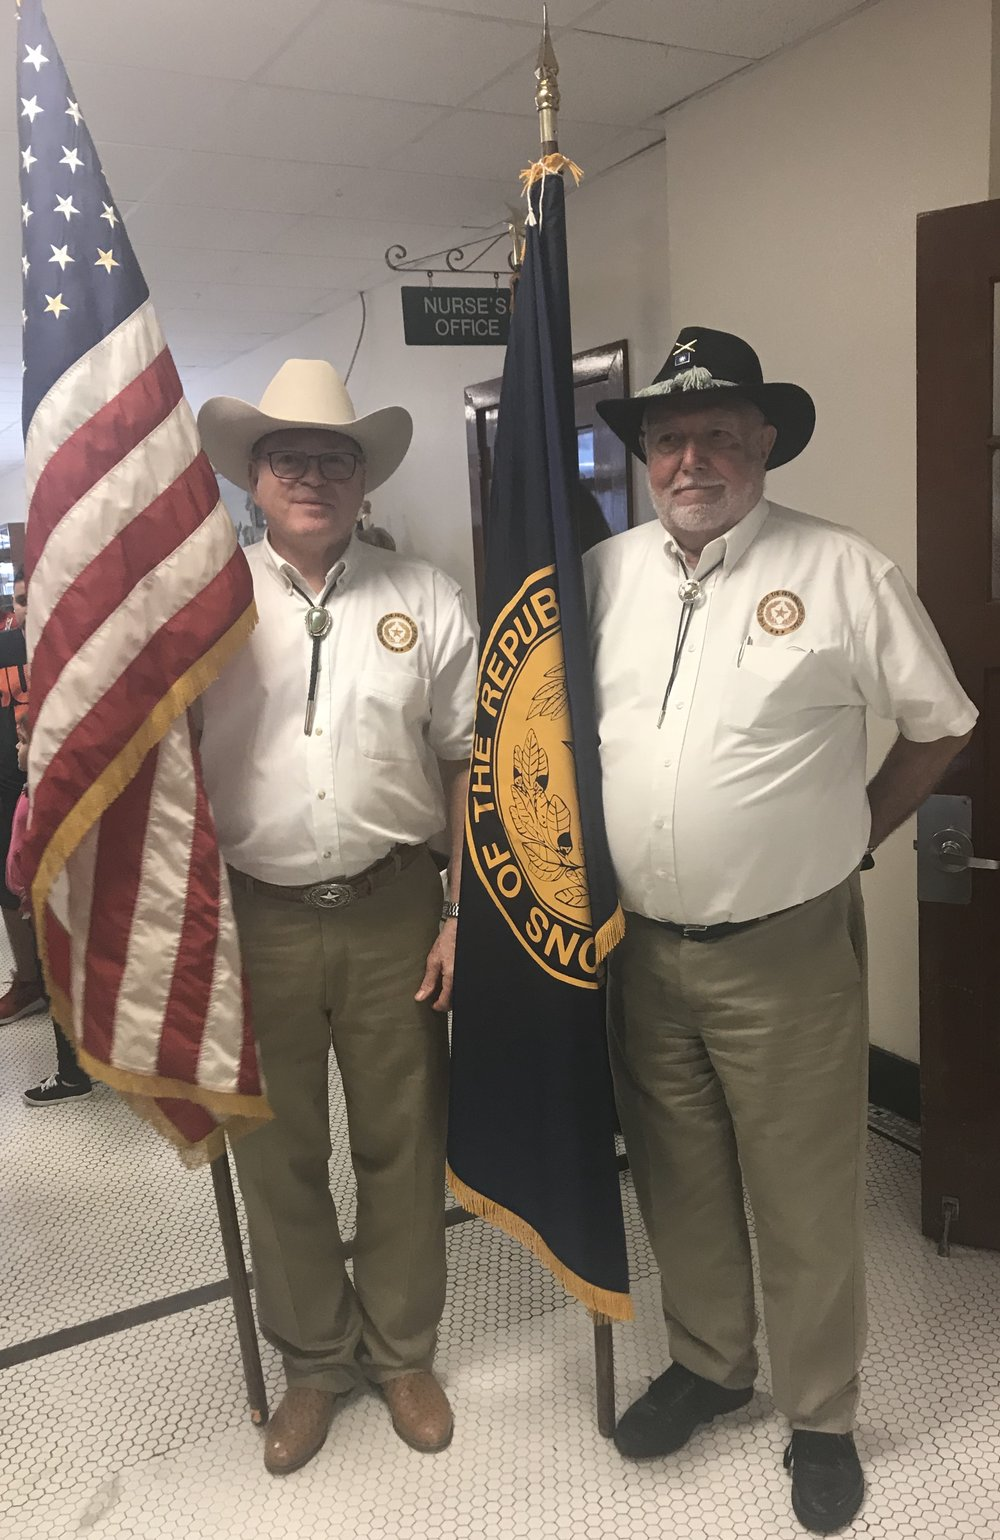 Mike Edwards and Gerry Gieger carried the US and SRT Chapter Flags in the ceremony for Military Order of World Wars MOWW on November 4th, 2018 in Fort Worth.